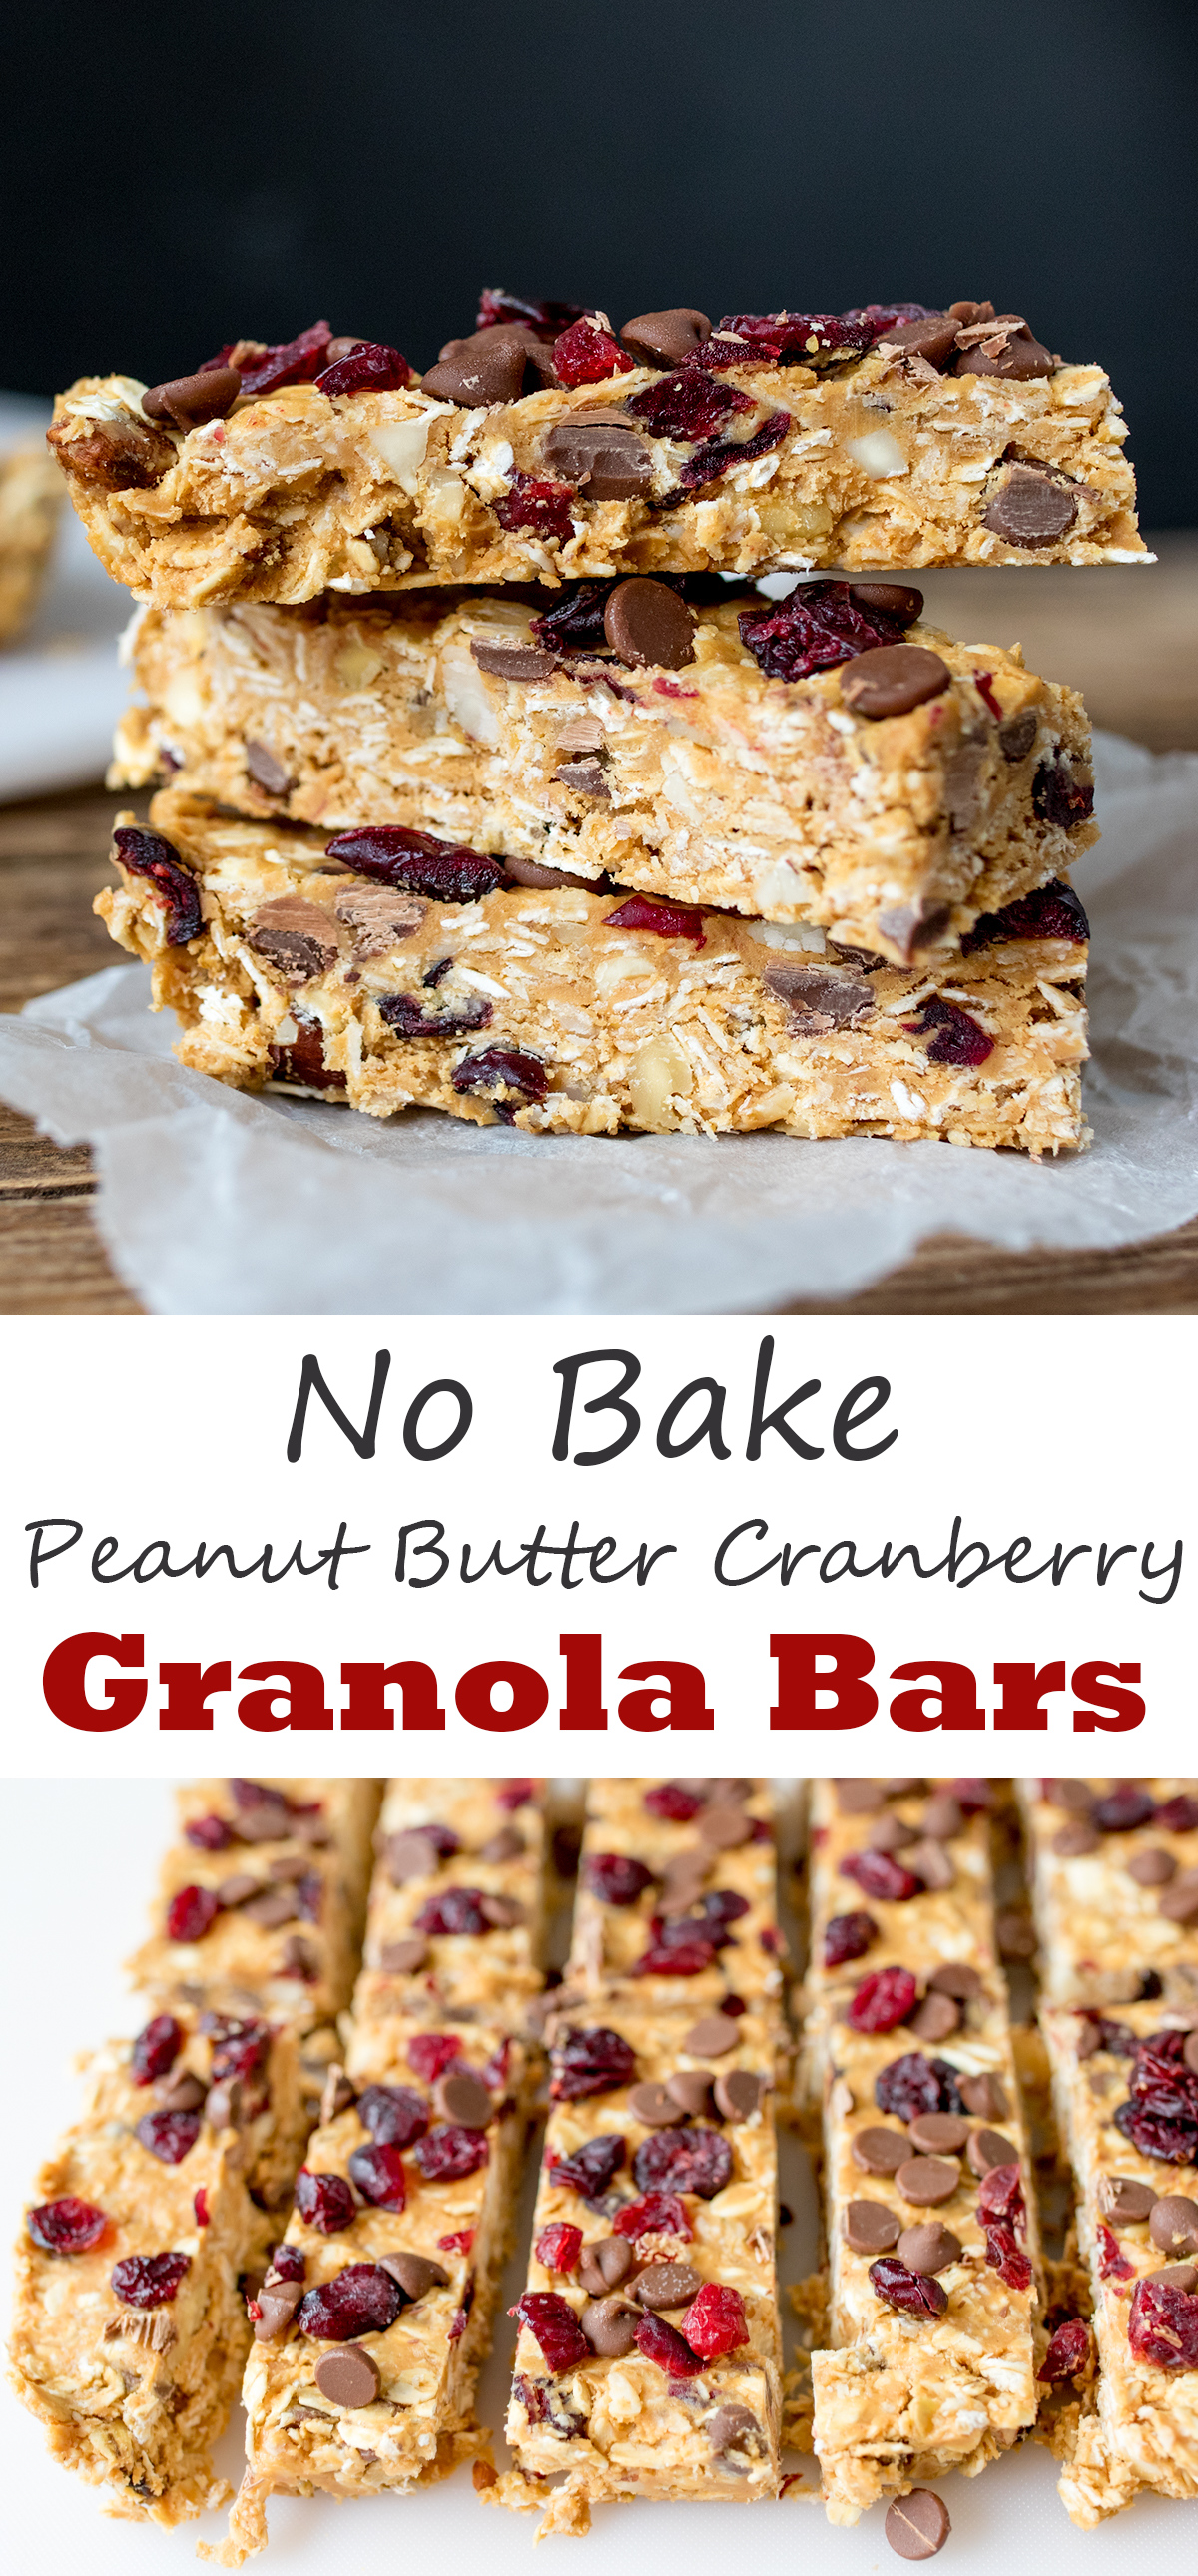 No bake peanut butter granola bars pinterest